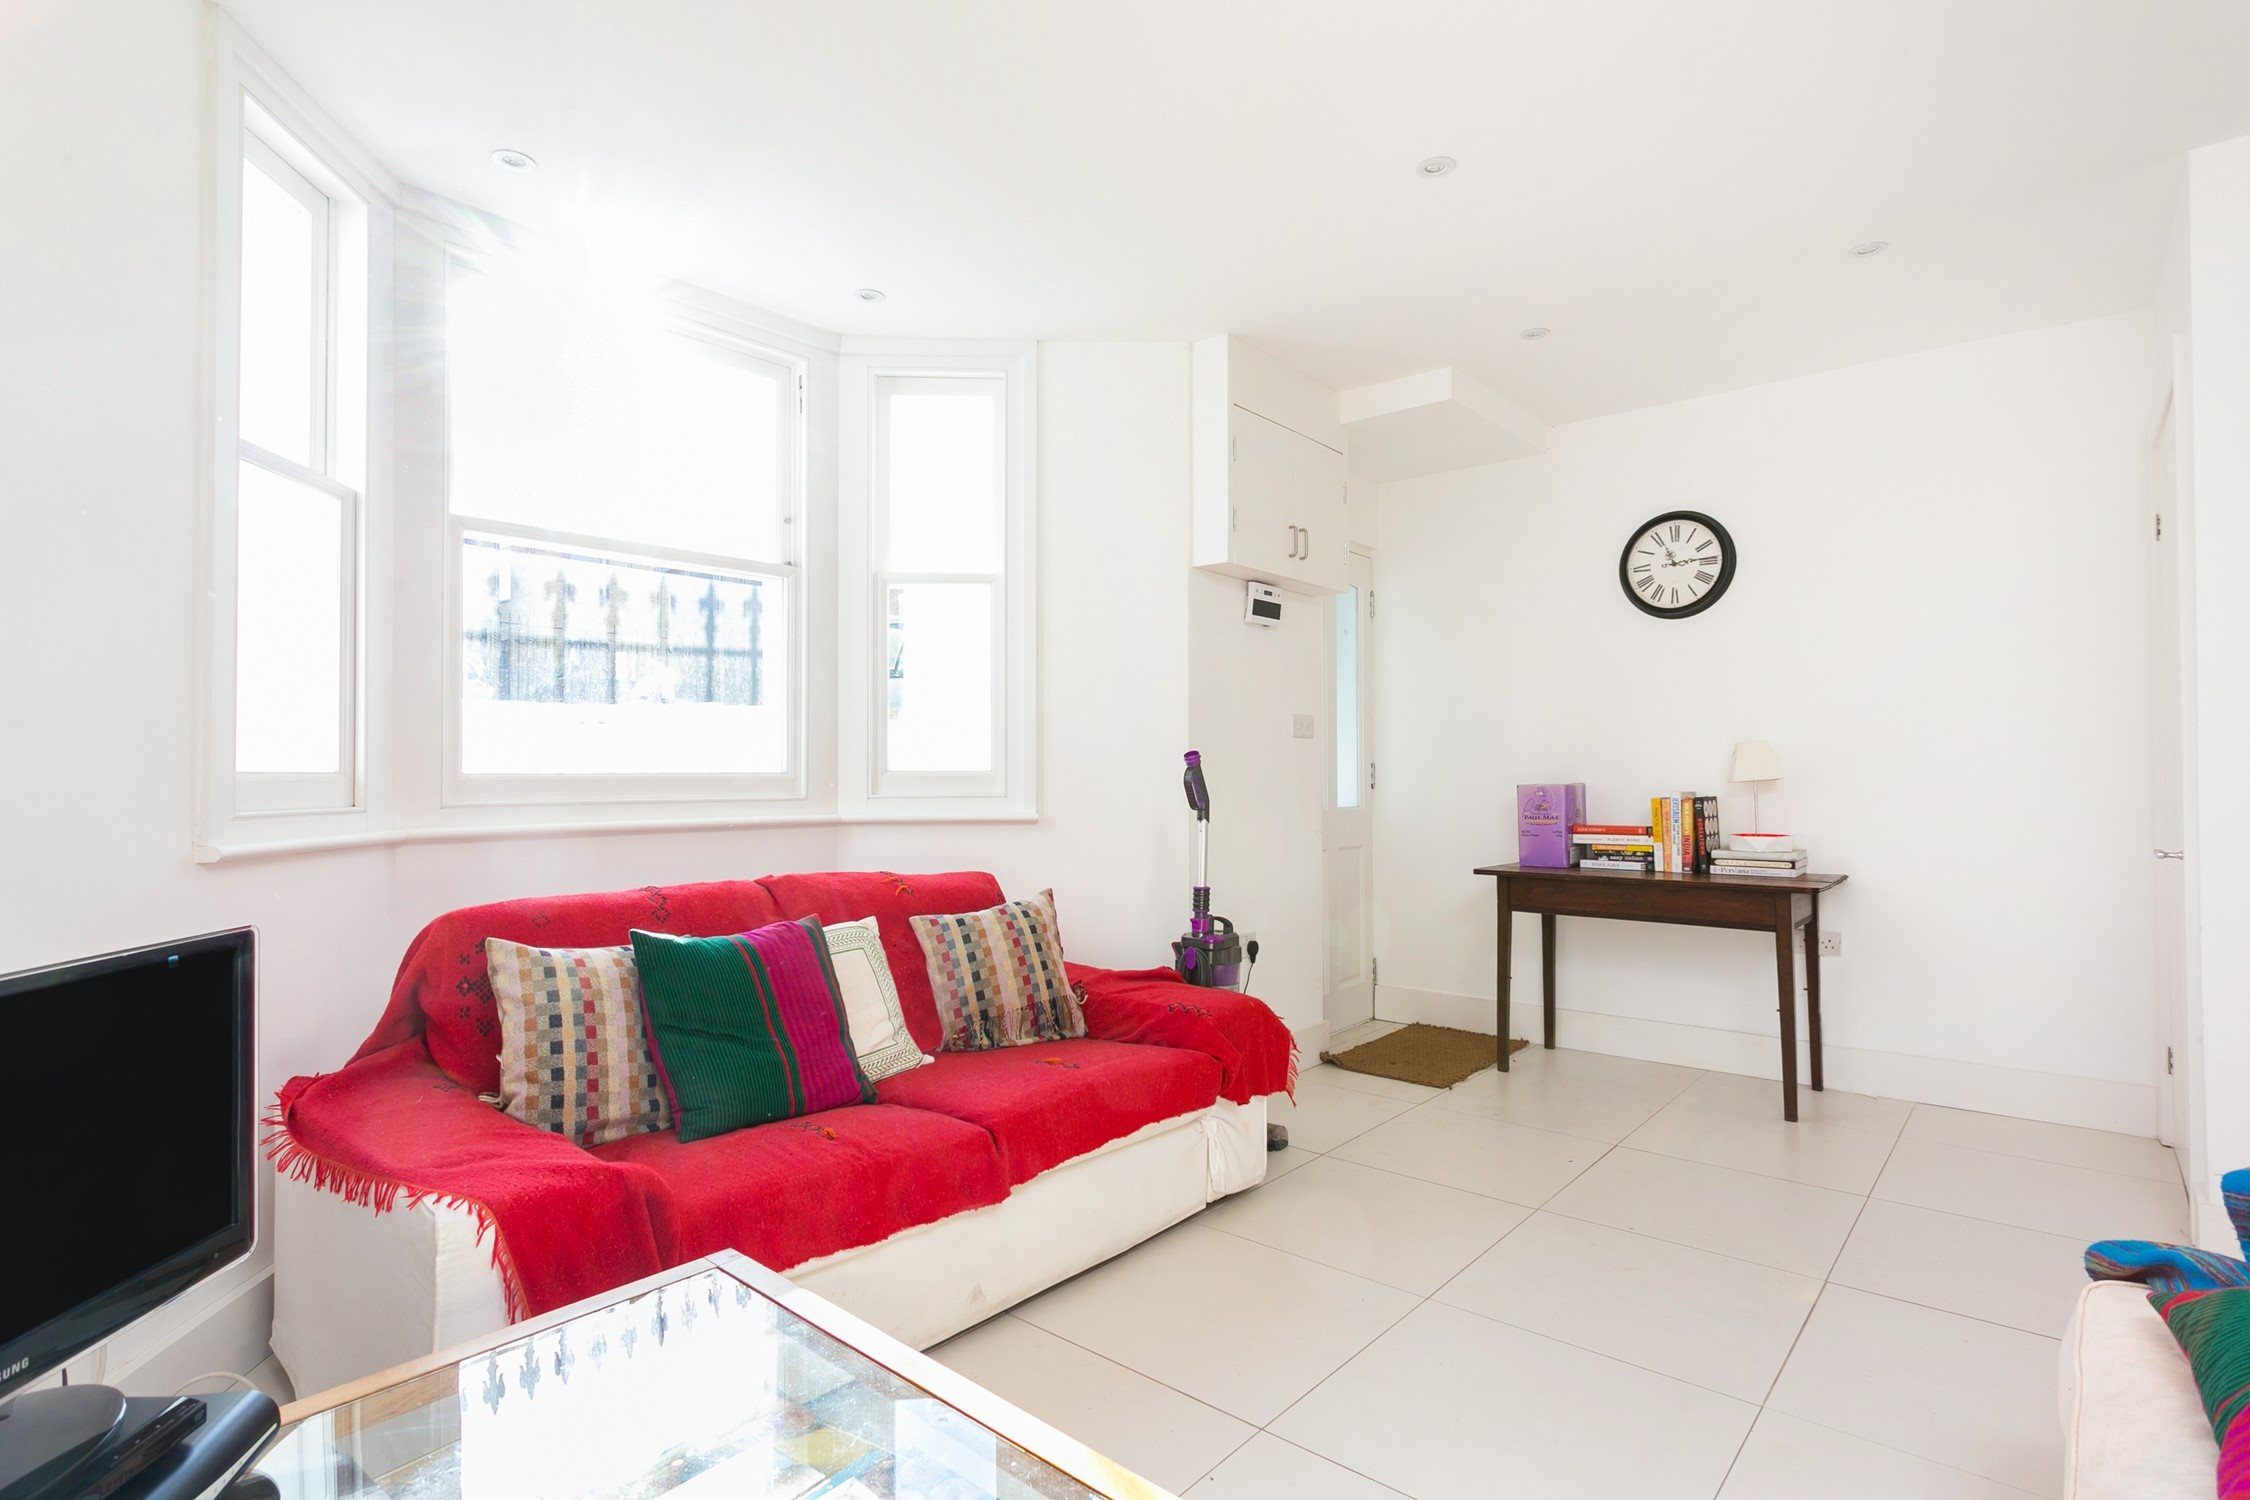 Portico - 4 Bedroom Flat recently let in Brixton: Argyll ...